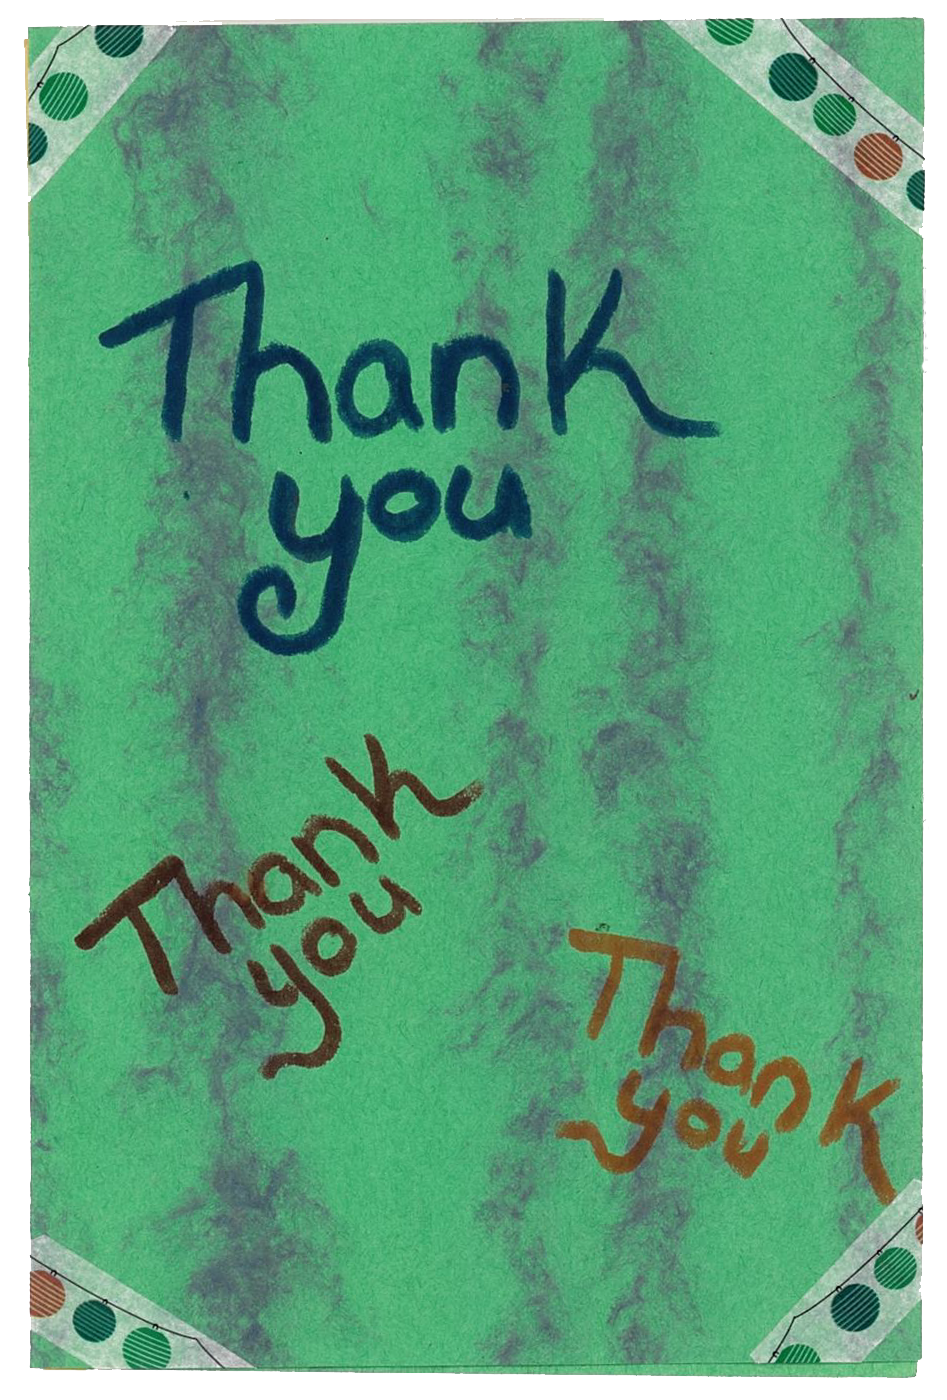 The exterior of the hand written card from Outreach families. The words on the front read 'thank you' 3 different times.